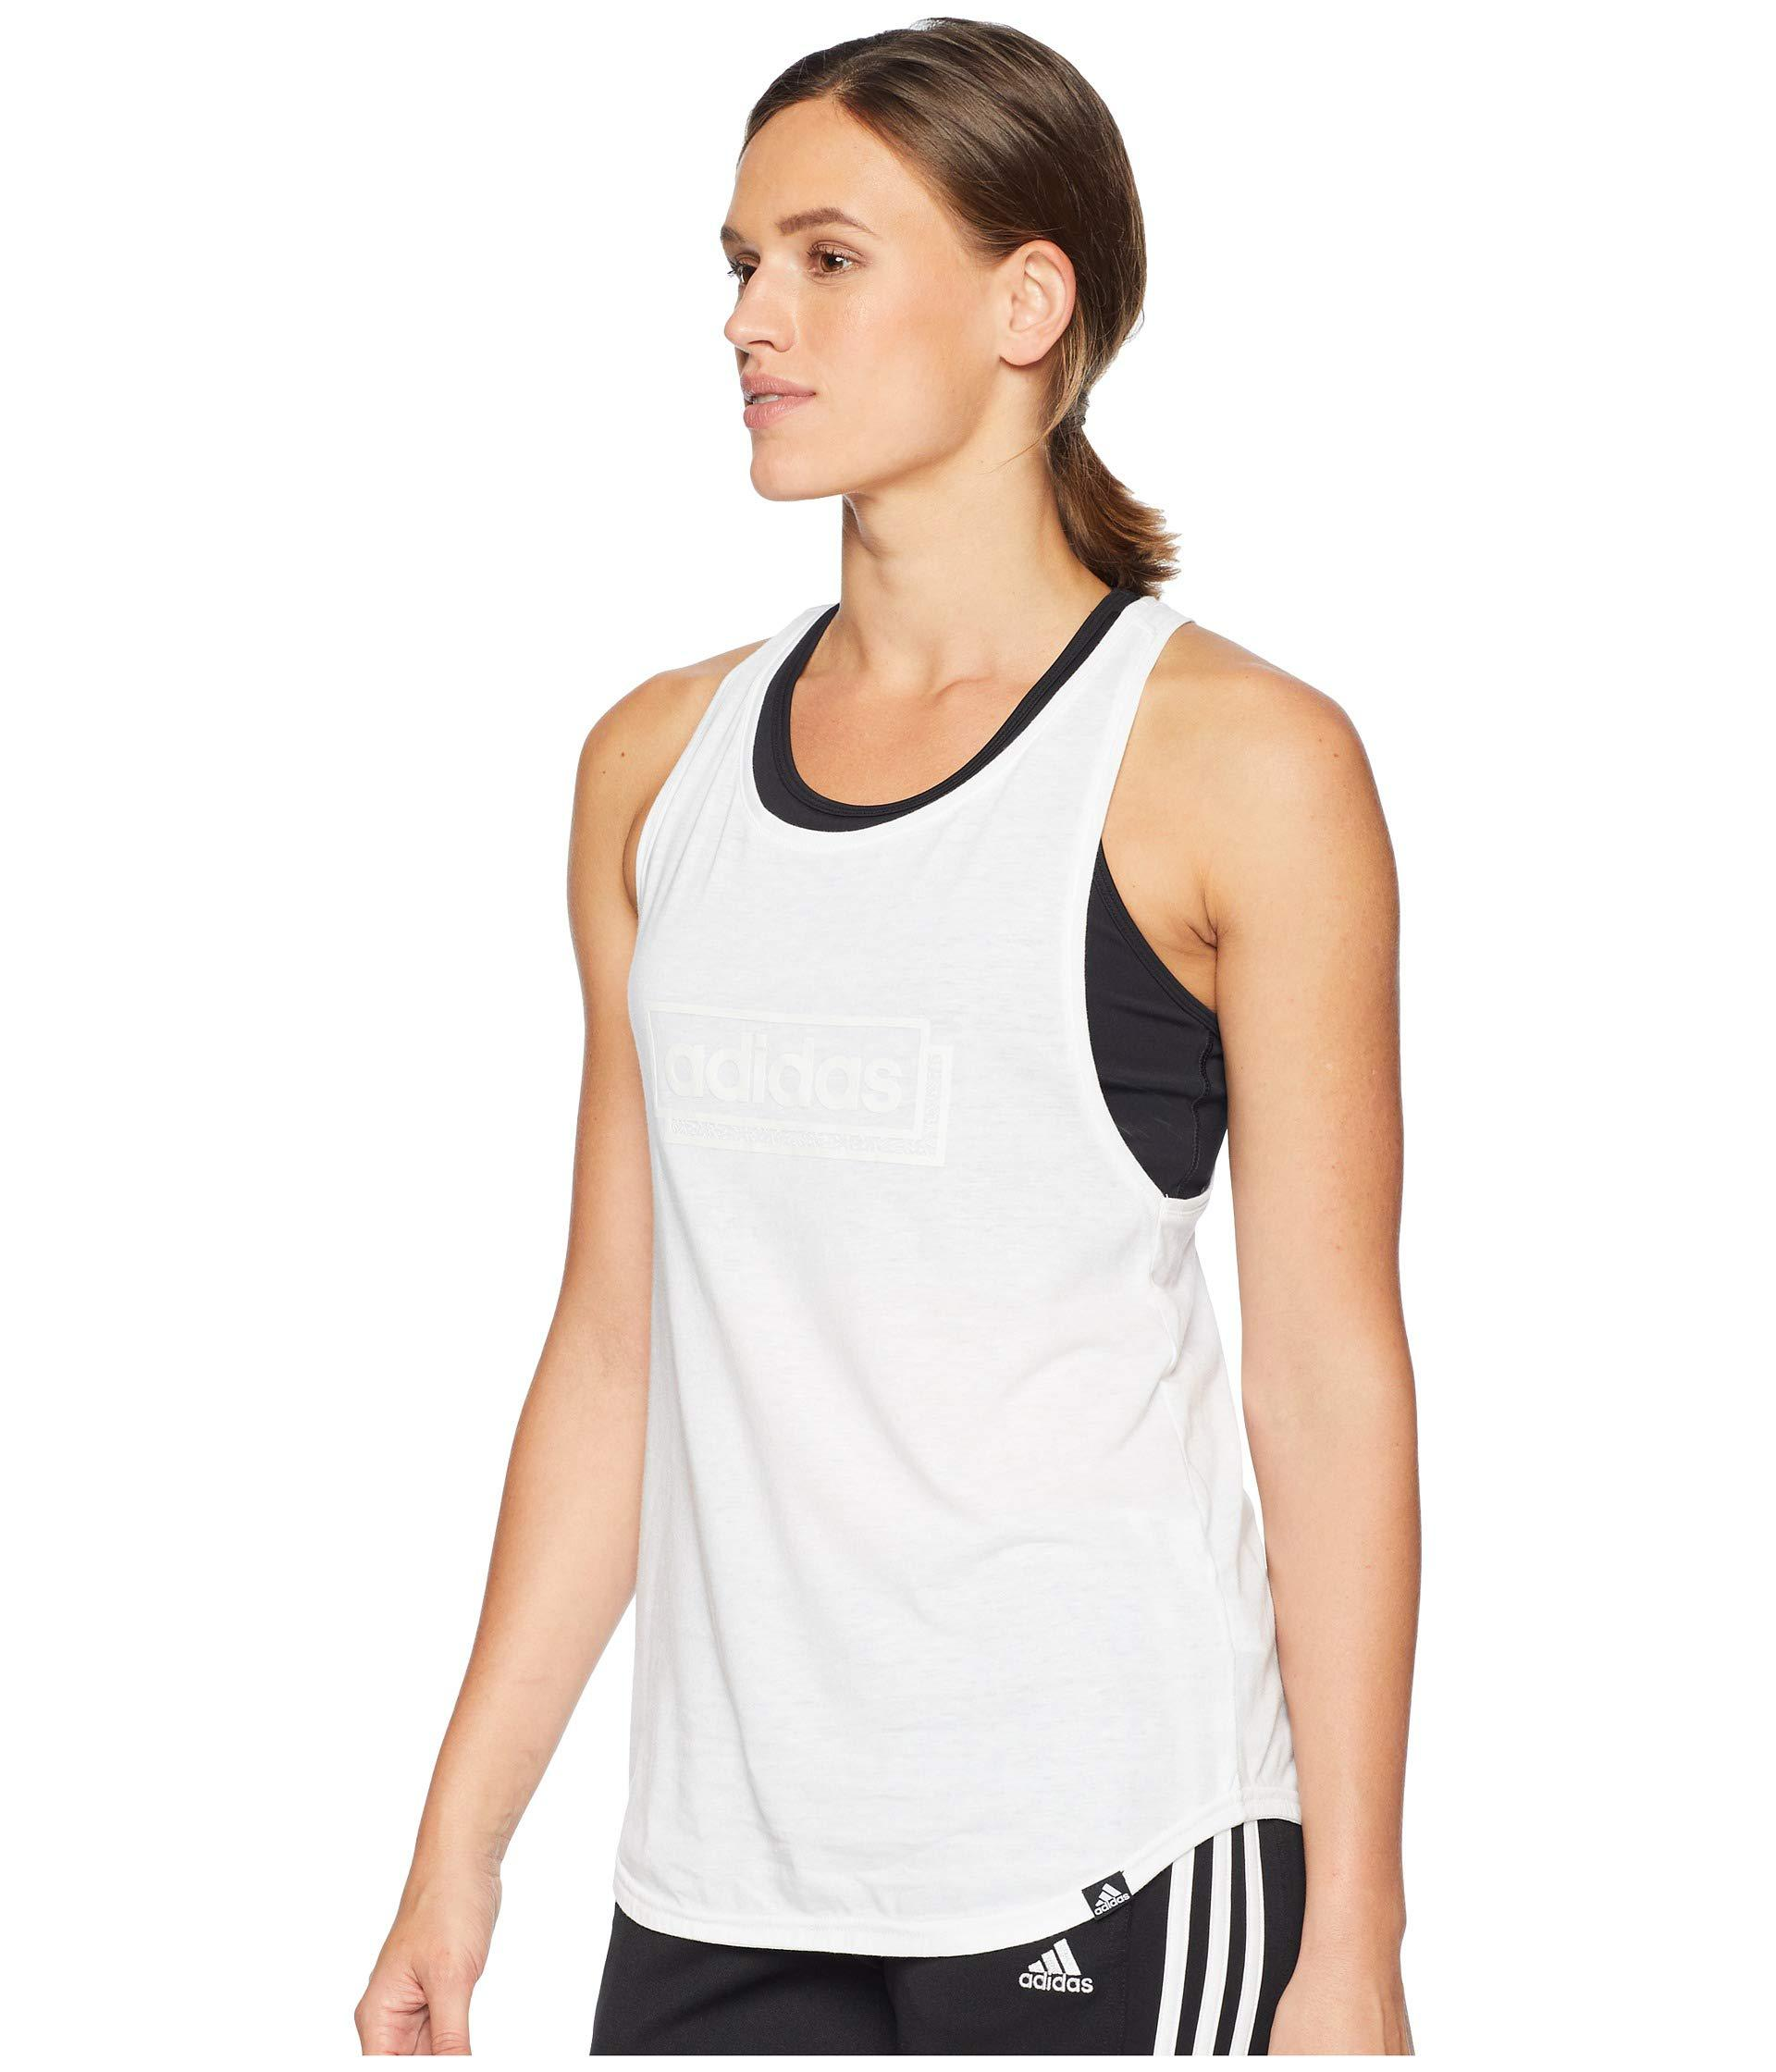 Tank Sleeveless white Adidas Linear Lyst Women's In Top Adibox White xp0w4Sq